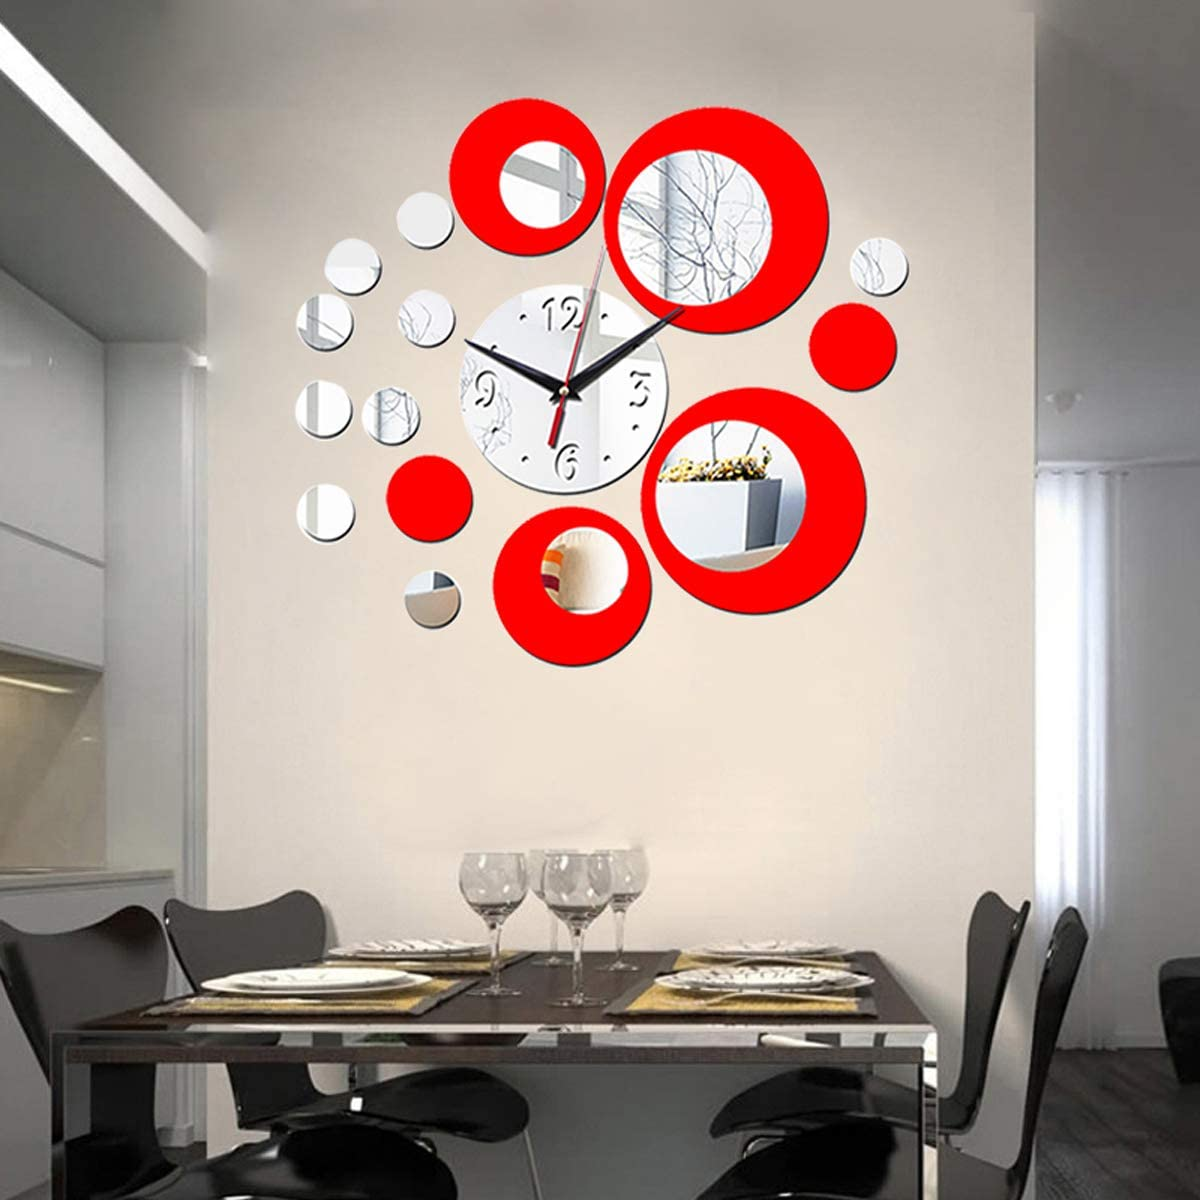 HOODDEAL Acrylic Clock Mirrors Style Removable Decal Vinyl Art Wall Sticker Home Decor (Silver Red)